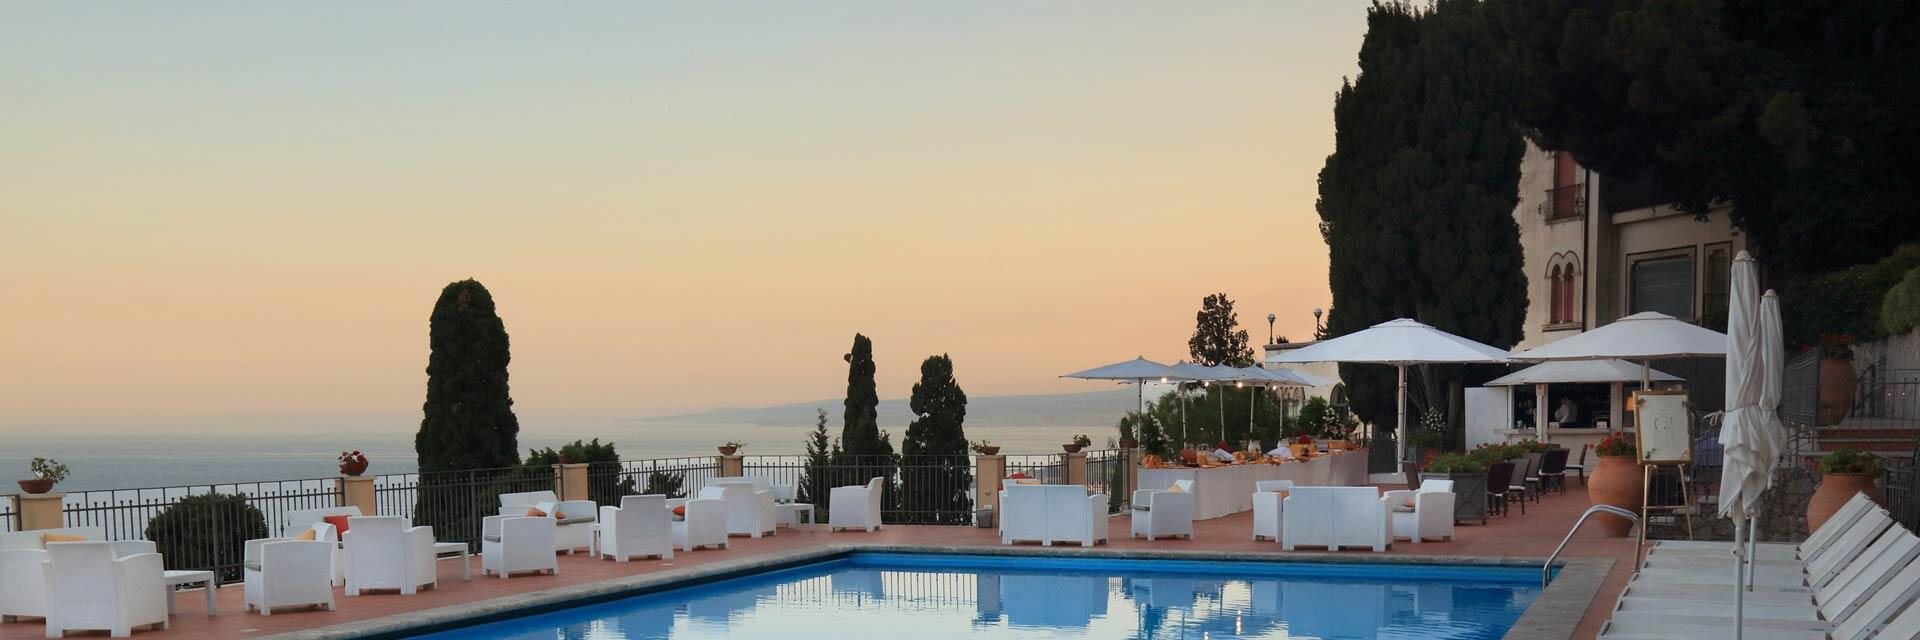 sanpietrotaormina en day-spa-offer-hotel-5-star-luxury-taormina 012